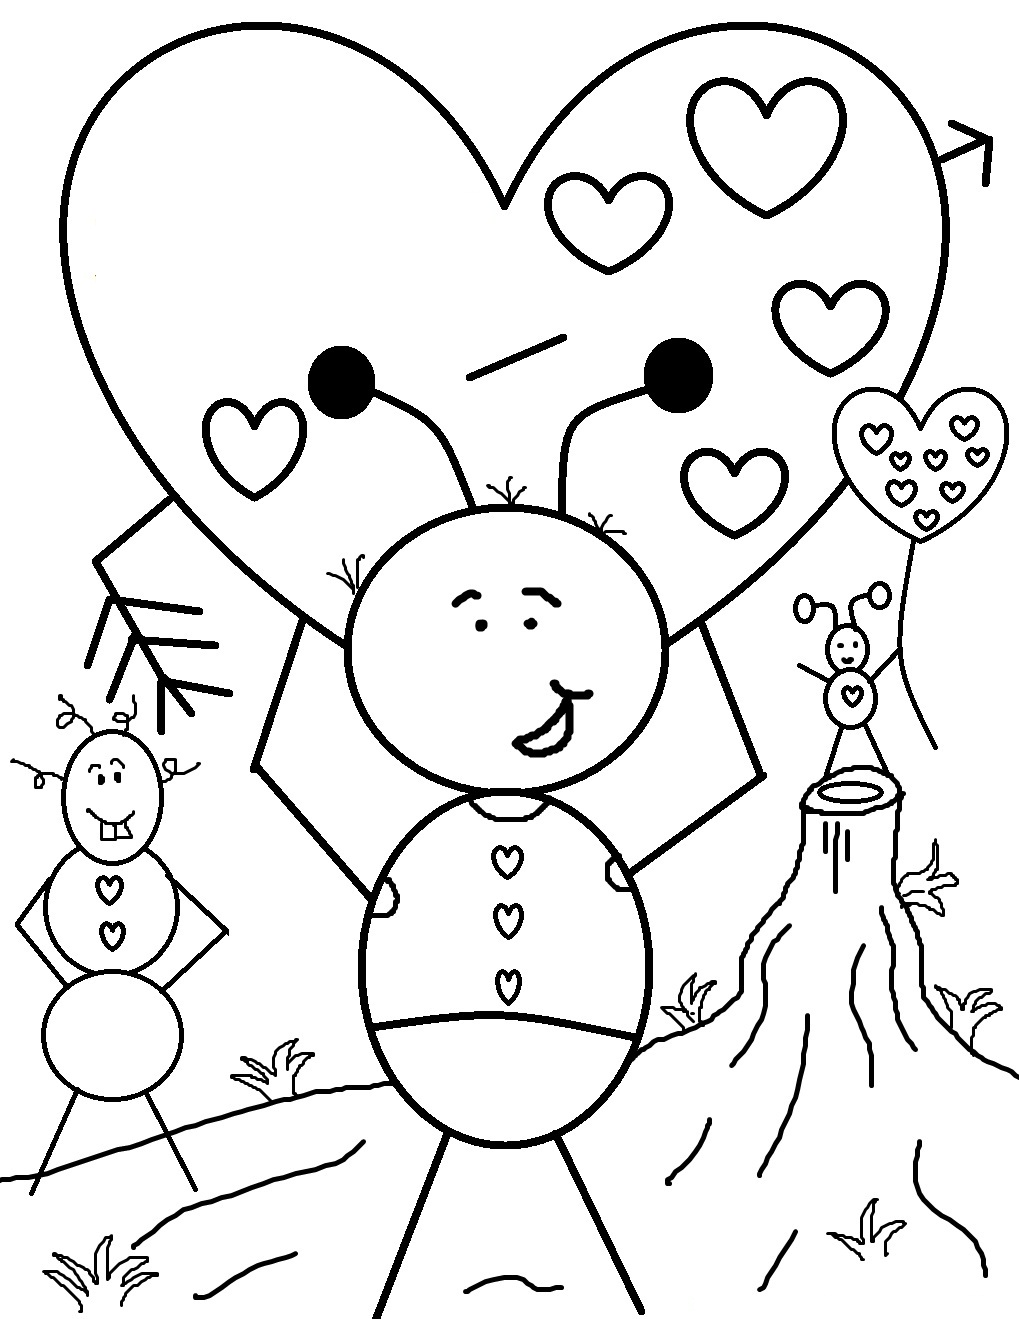 coloring pages for valantine - photo#33